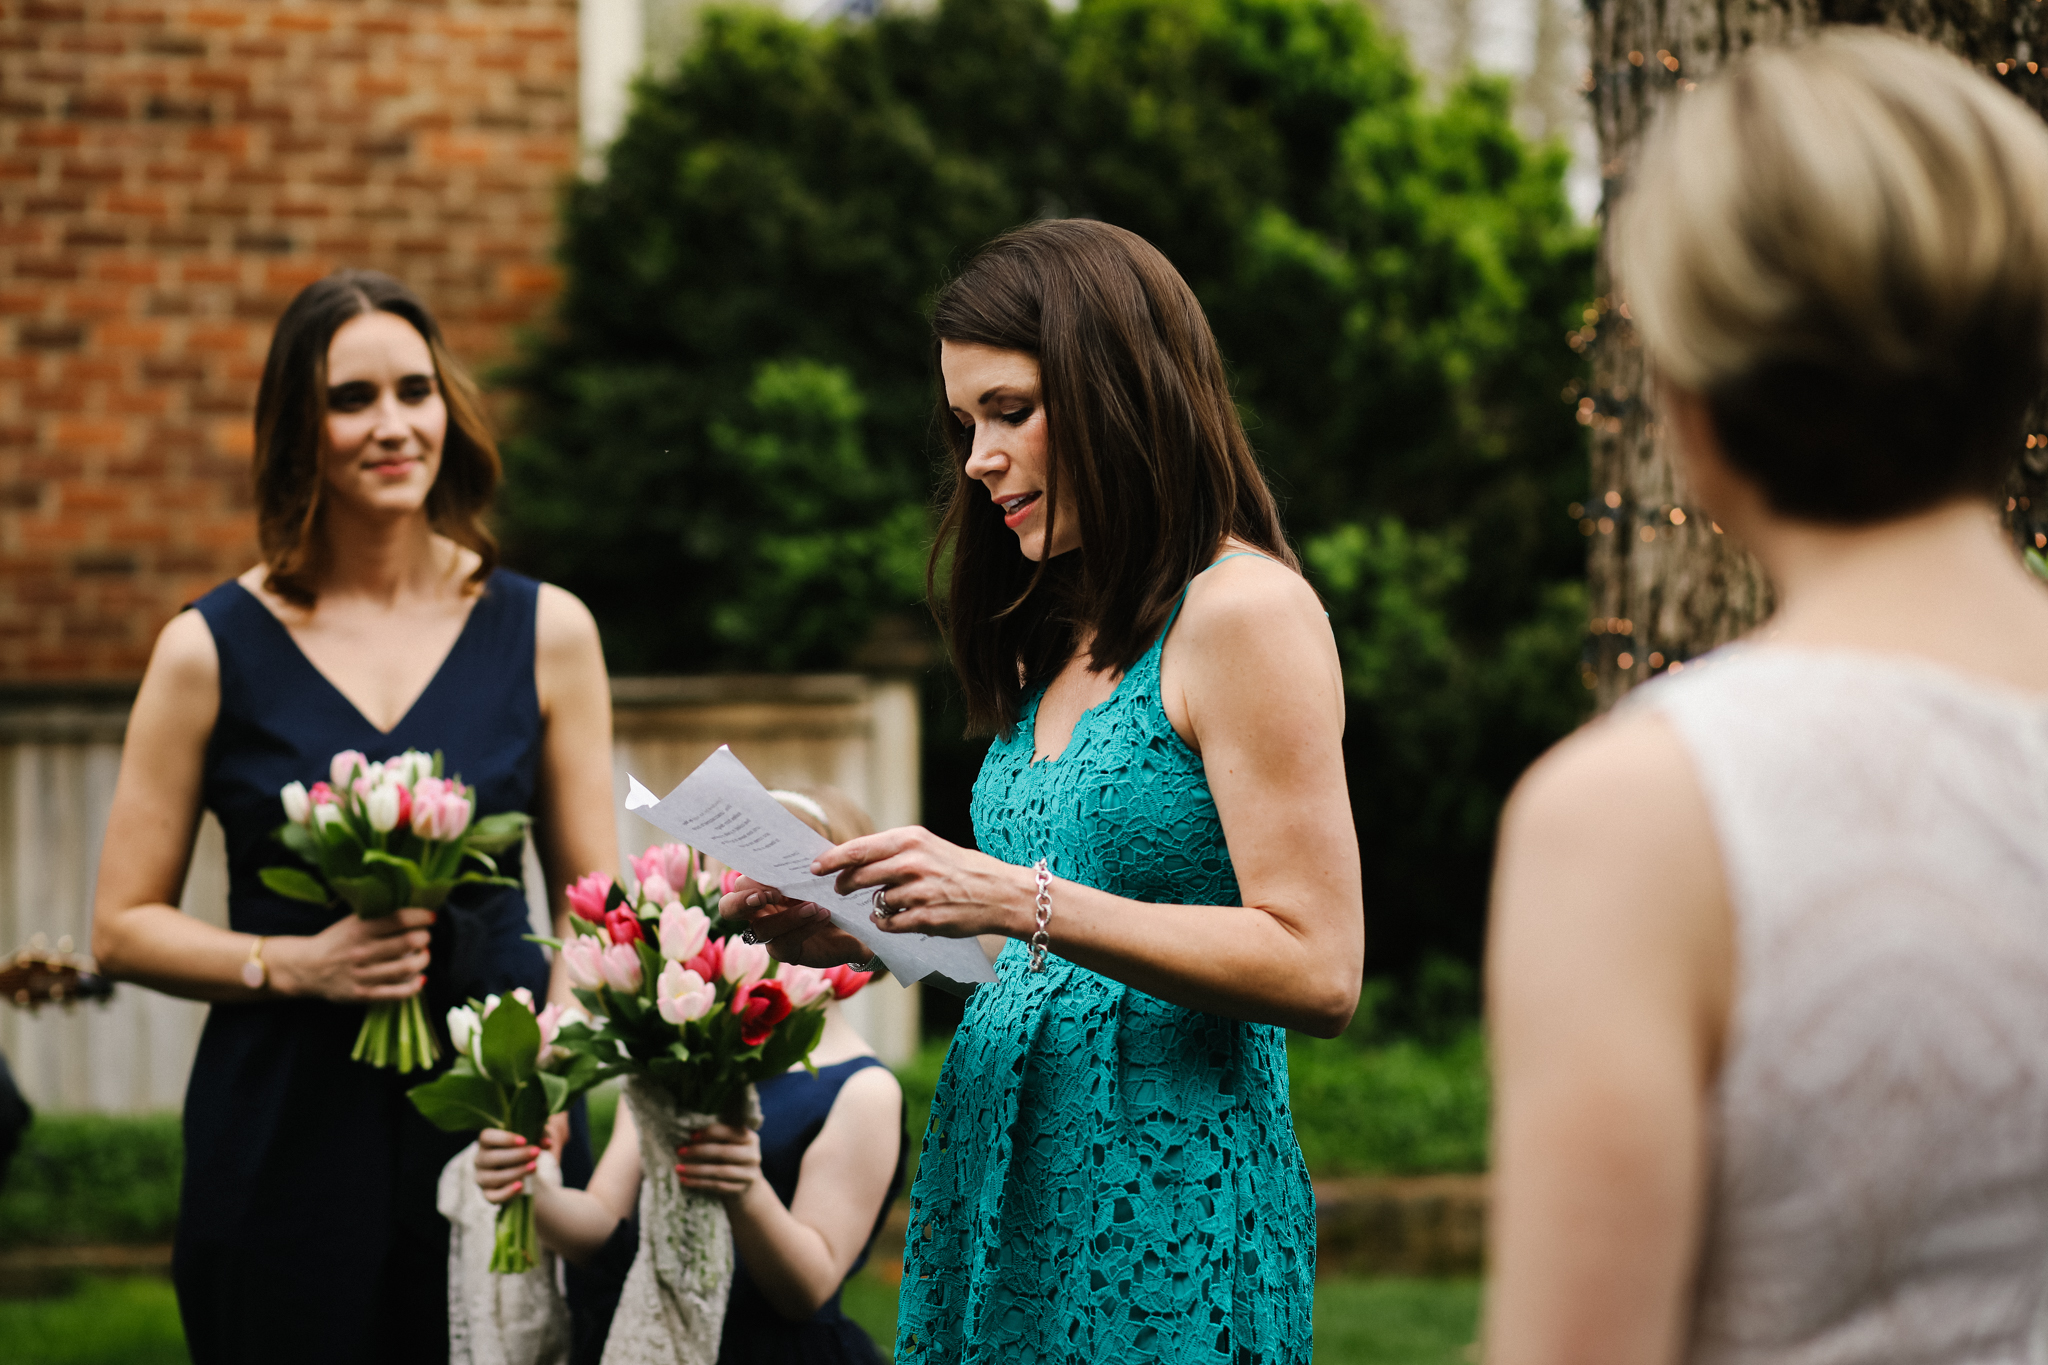 cook_wedding_richmond_virginia_rebecca_burt_photography-35.jpg